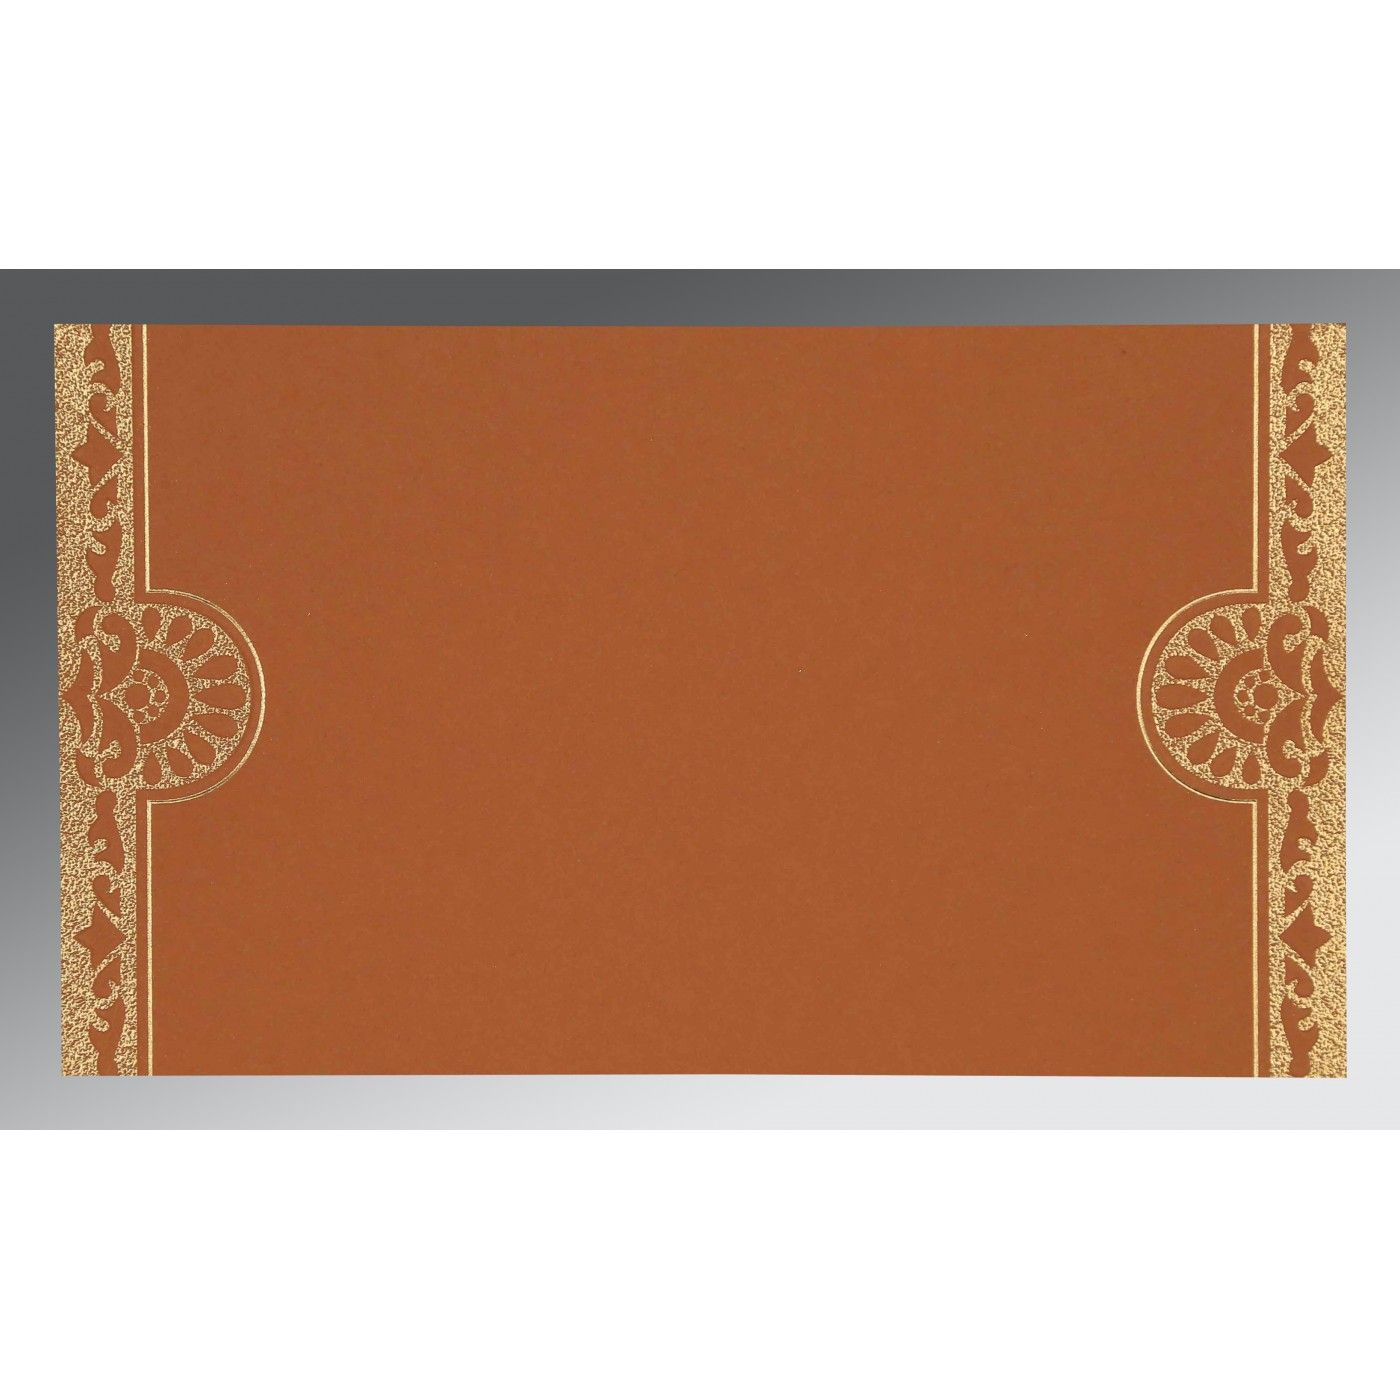 OFF-WHITE SHIMMERY FLORAL THEMED - SCREEN PRINTED WEDDING CARD : CIN-8227L - IndianWeddingCards